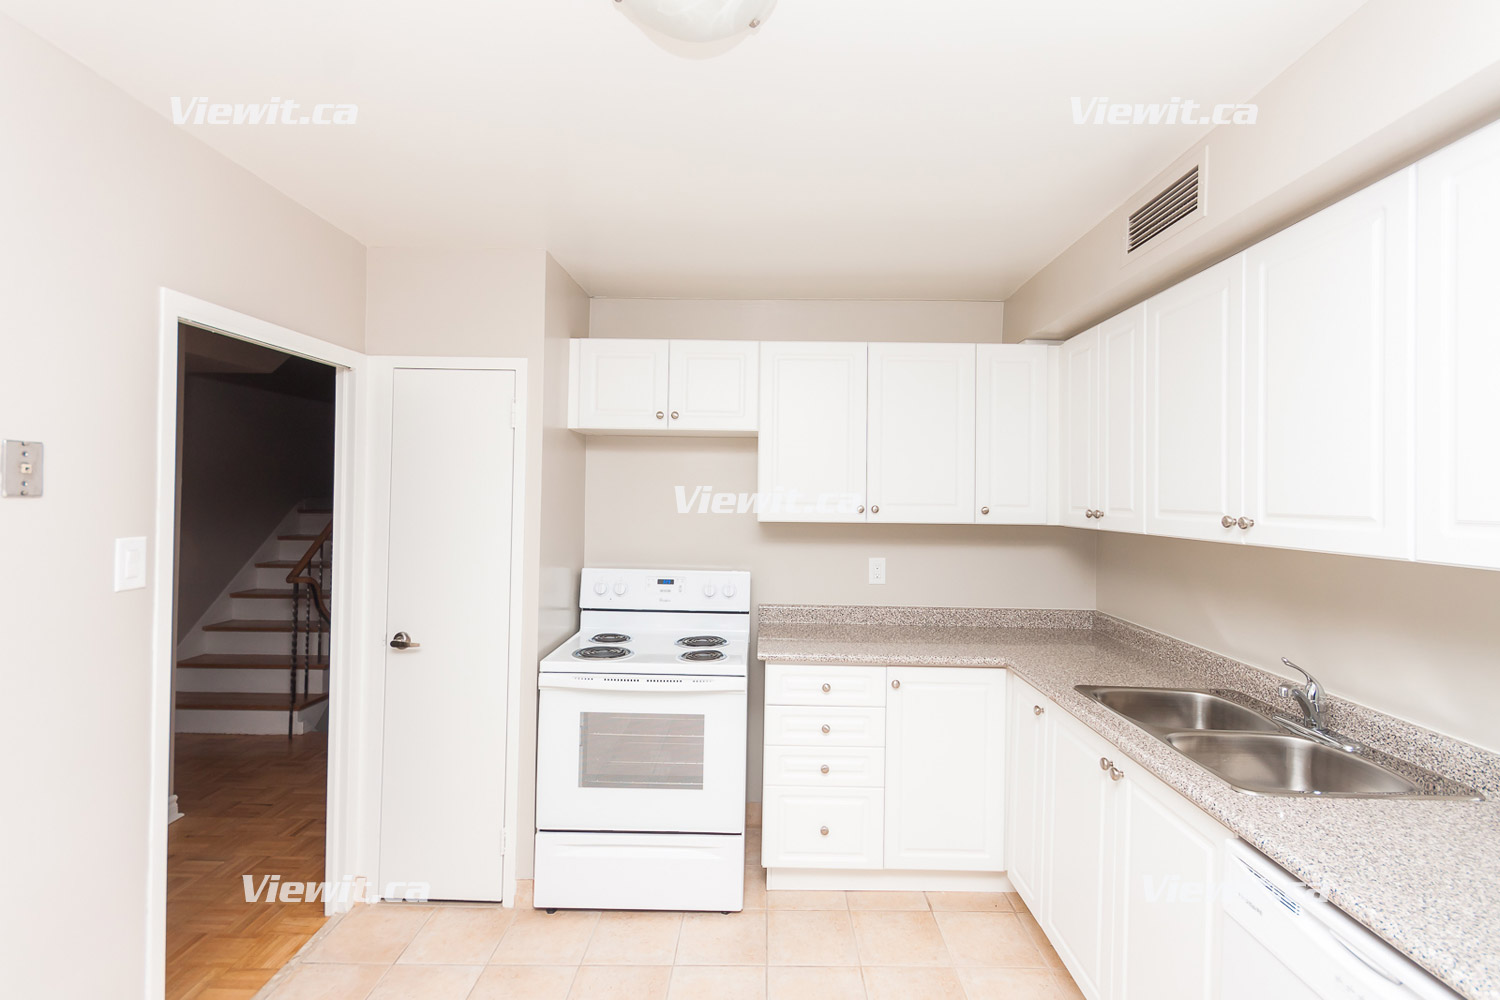 Mount pleasant davisville toronto on 3 bedroom for - 3 bedroom apartments for rent toronto ...